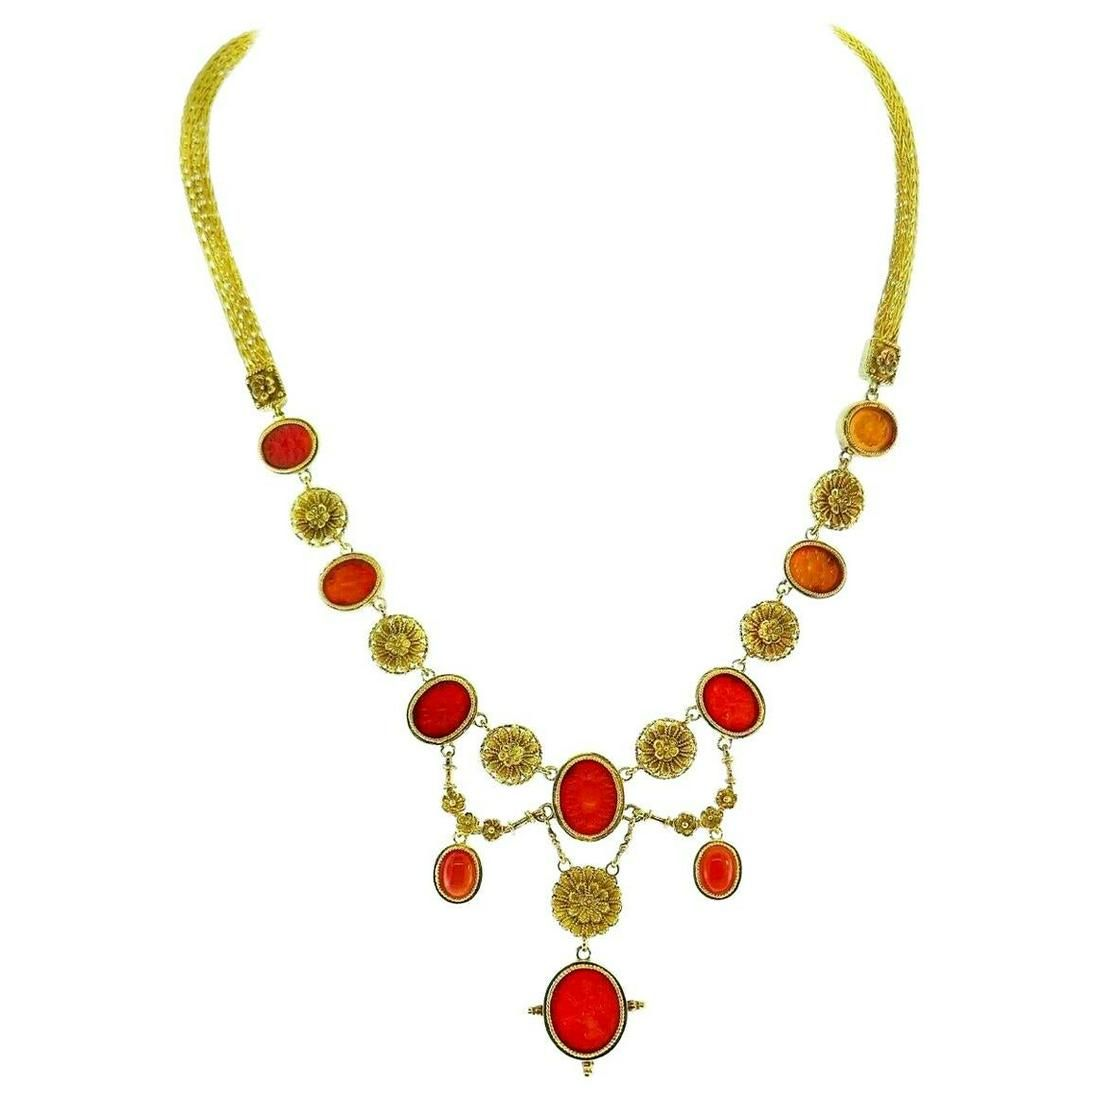 Ilias Lalaounis Yellow Gold Carved Carnelian Necklace